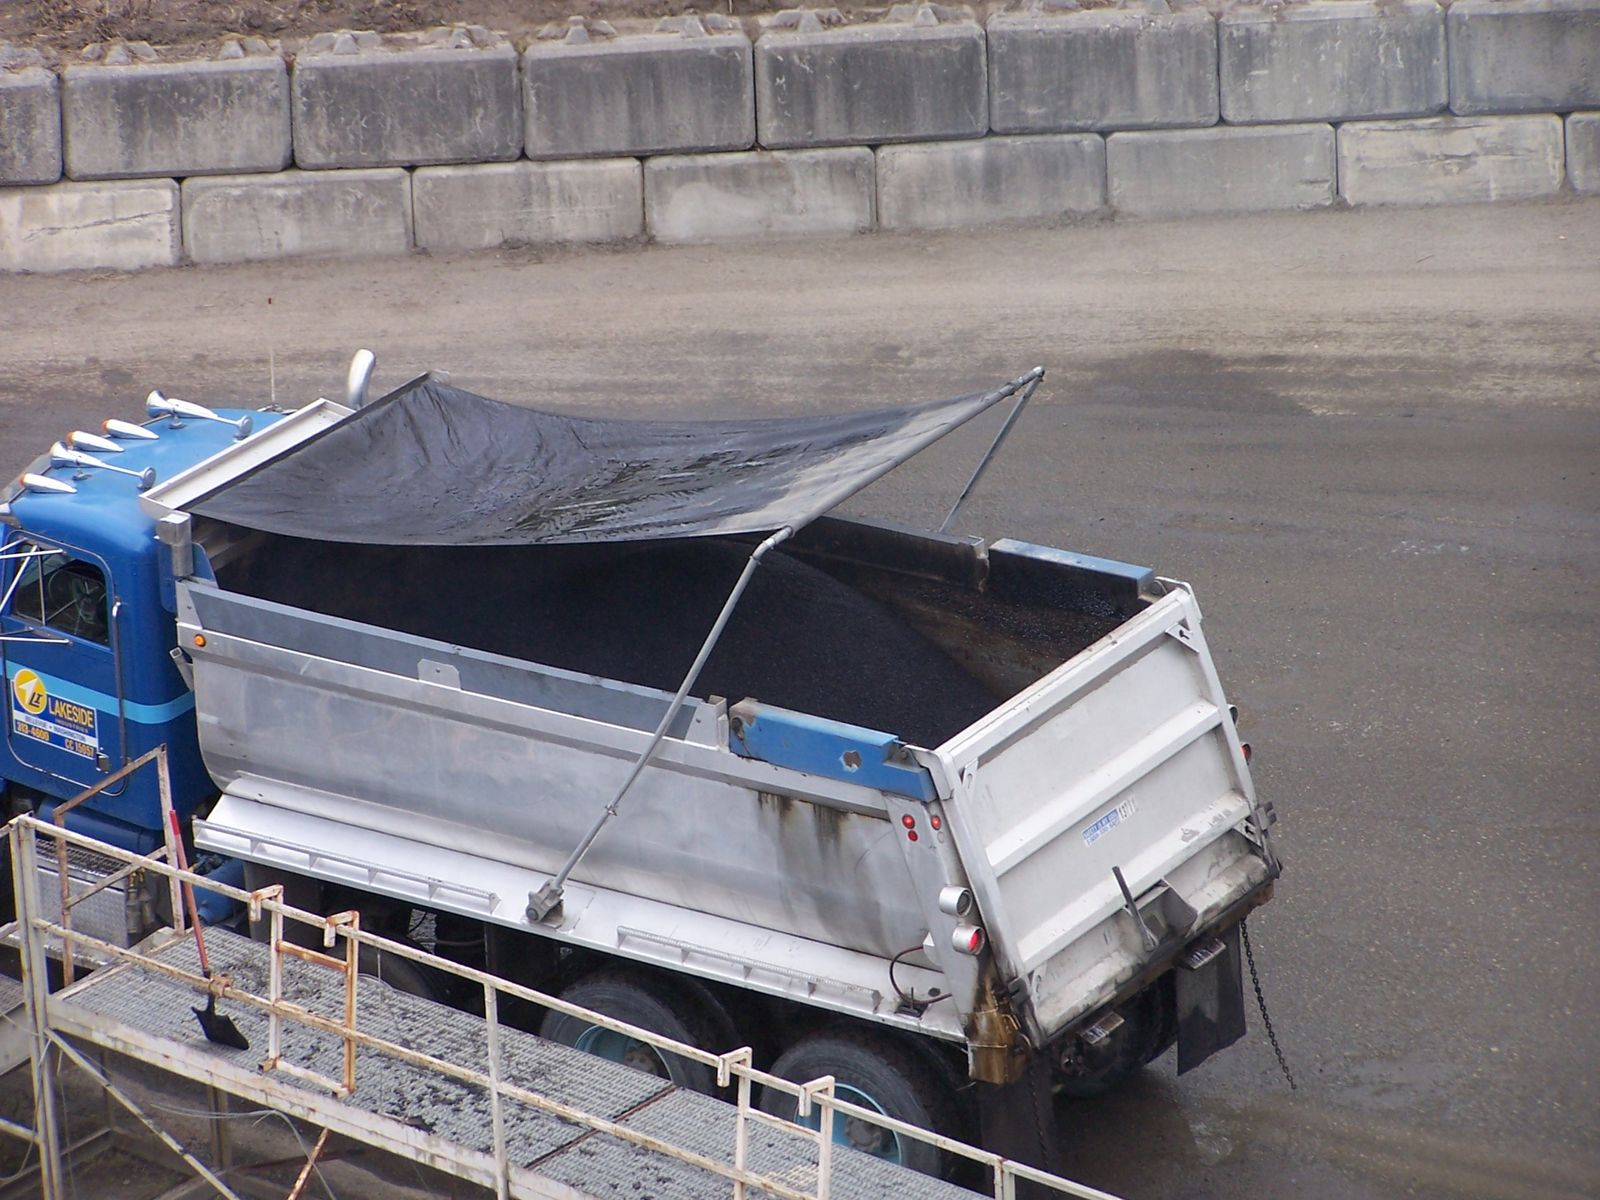 A load of asphalt mix being covered with a tarp.